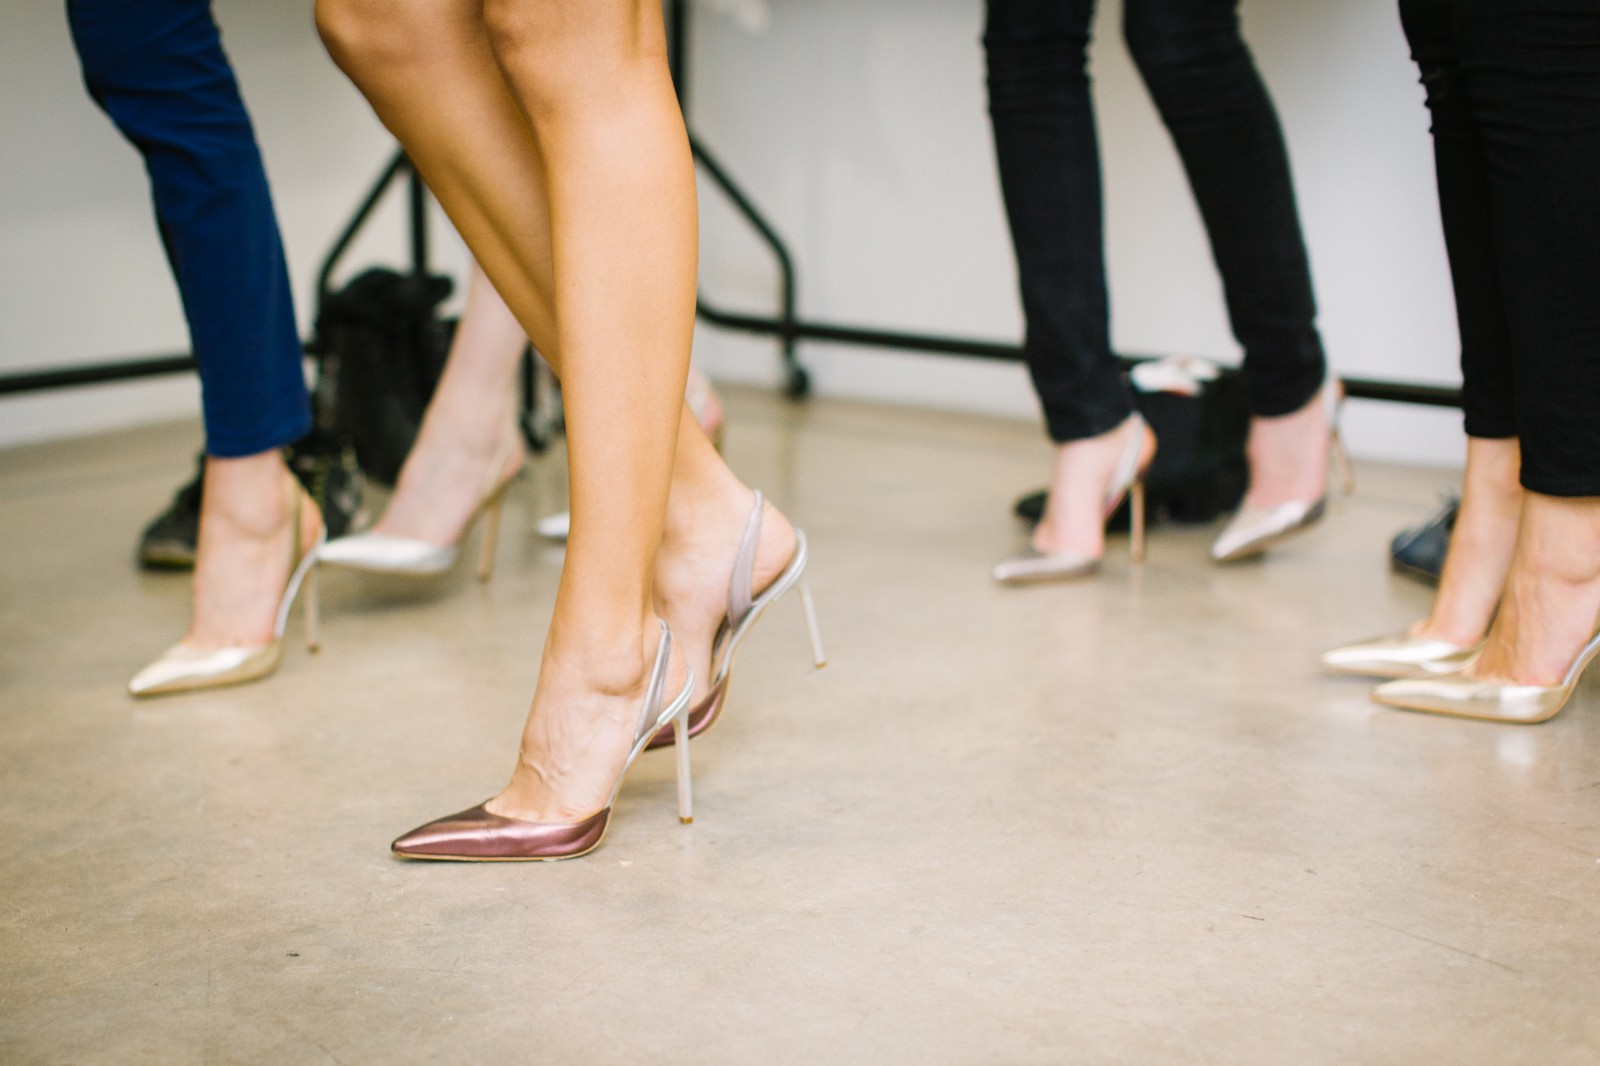 Quickly Improve Your Well-Being: Kick Off Your Heels